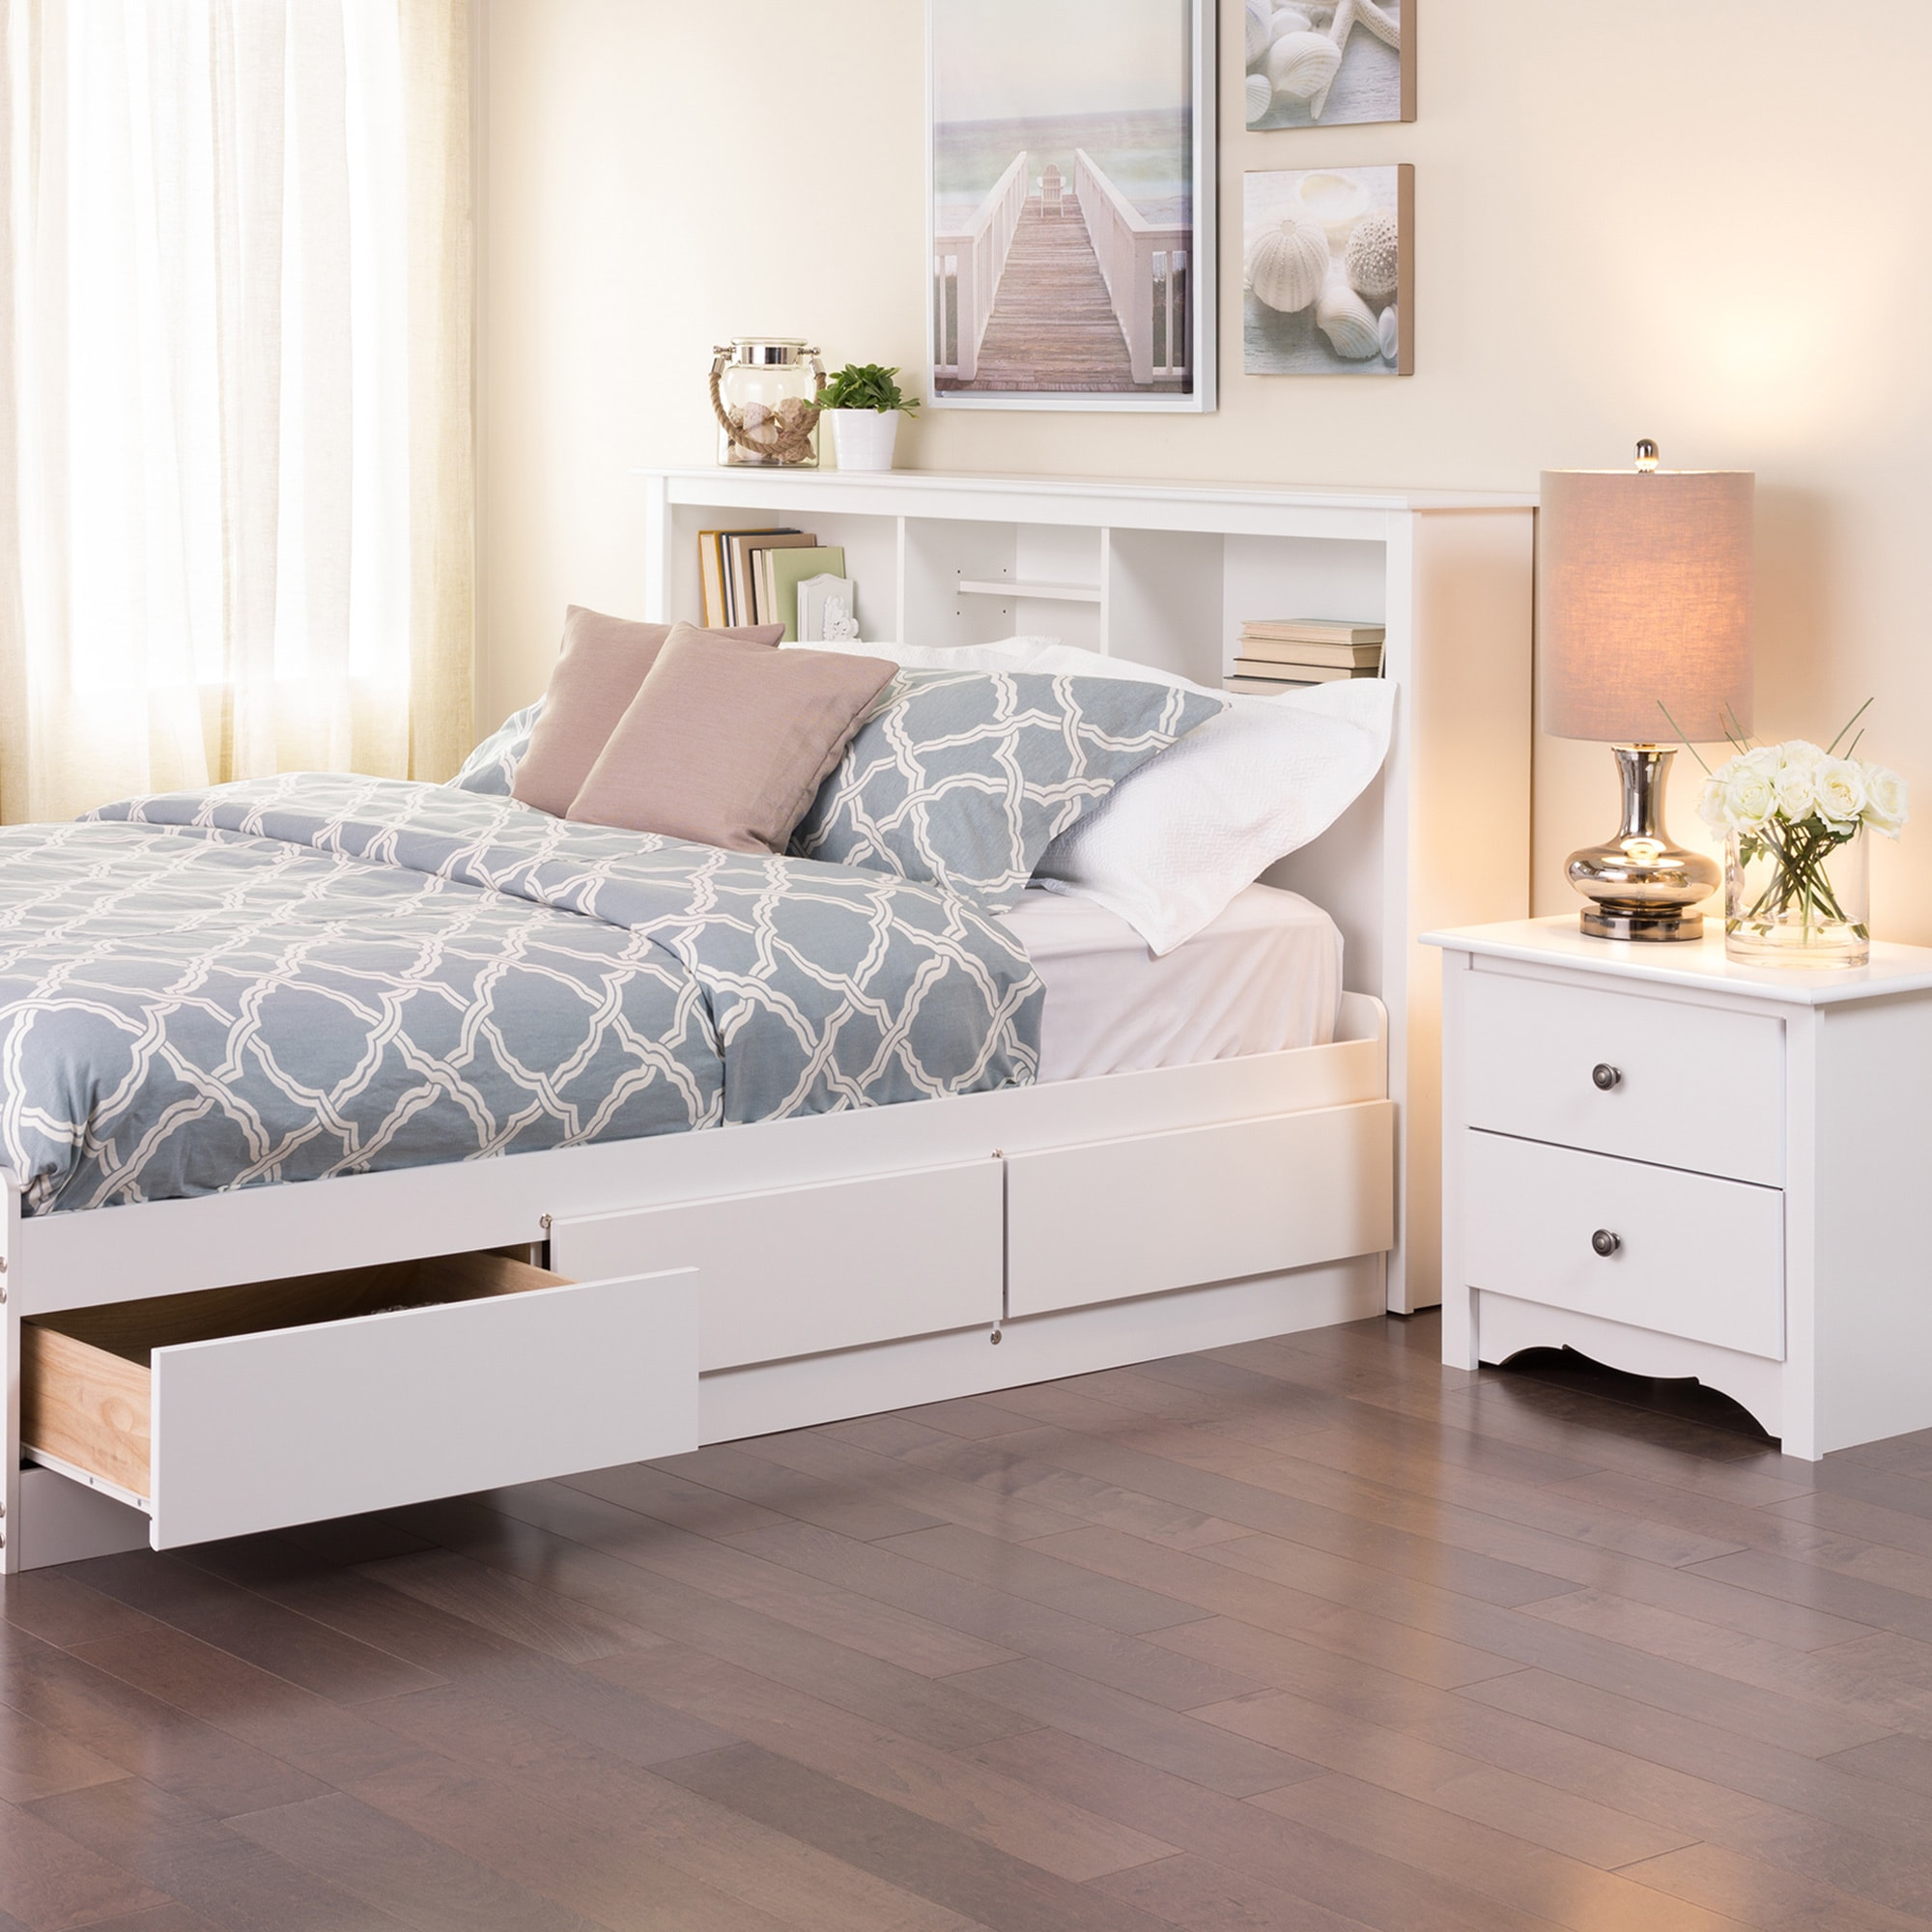 bed headboard headboards hidden storage bedroom with bookcase custom drawers full